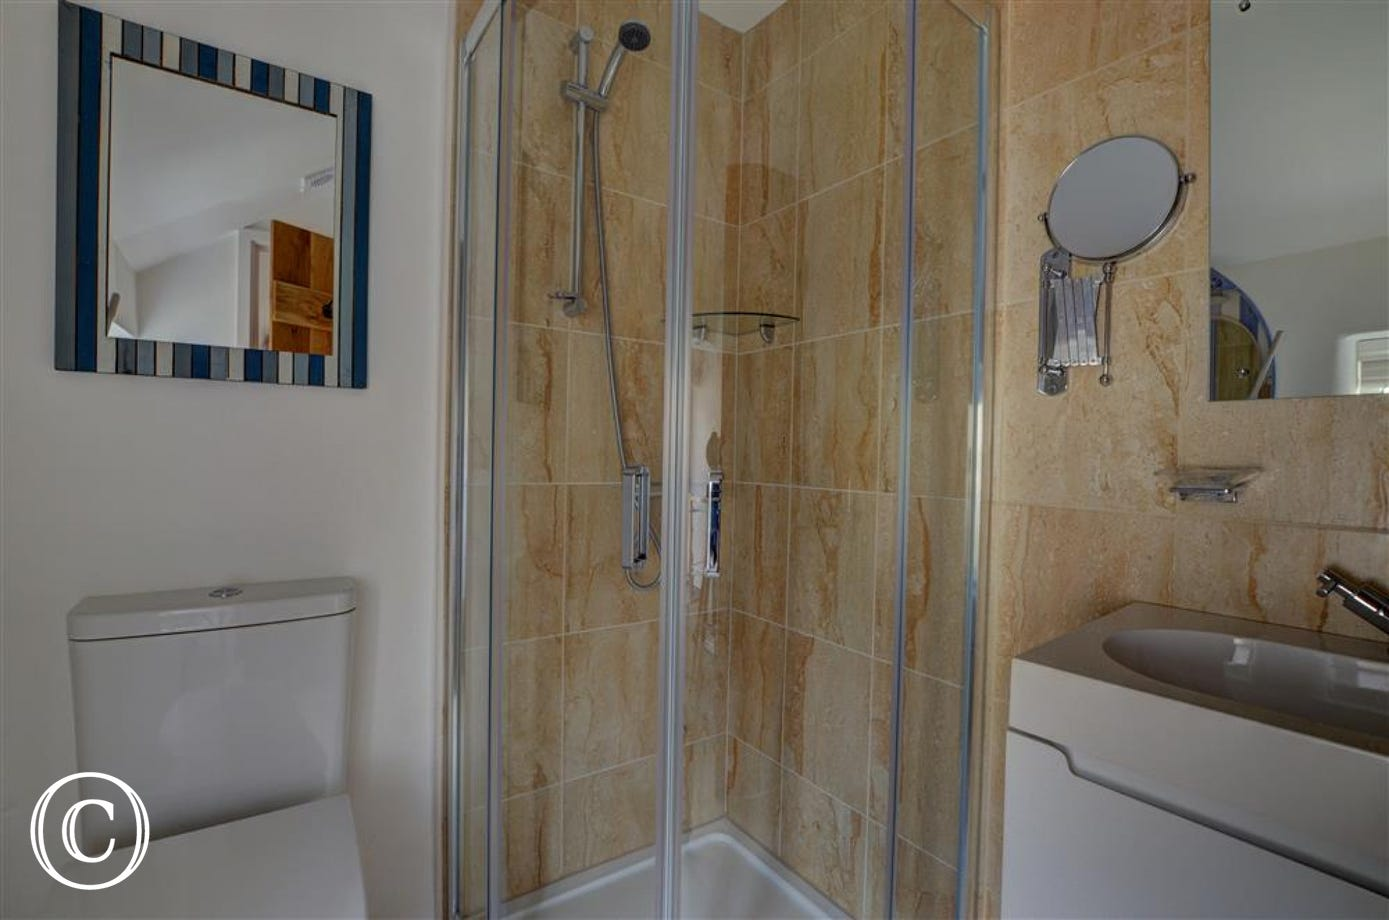 The upstairs bathroom with shower